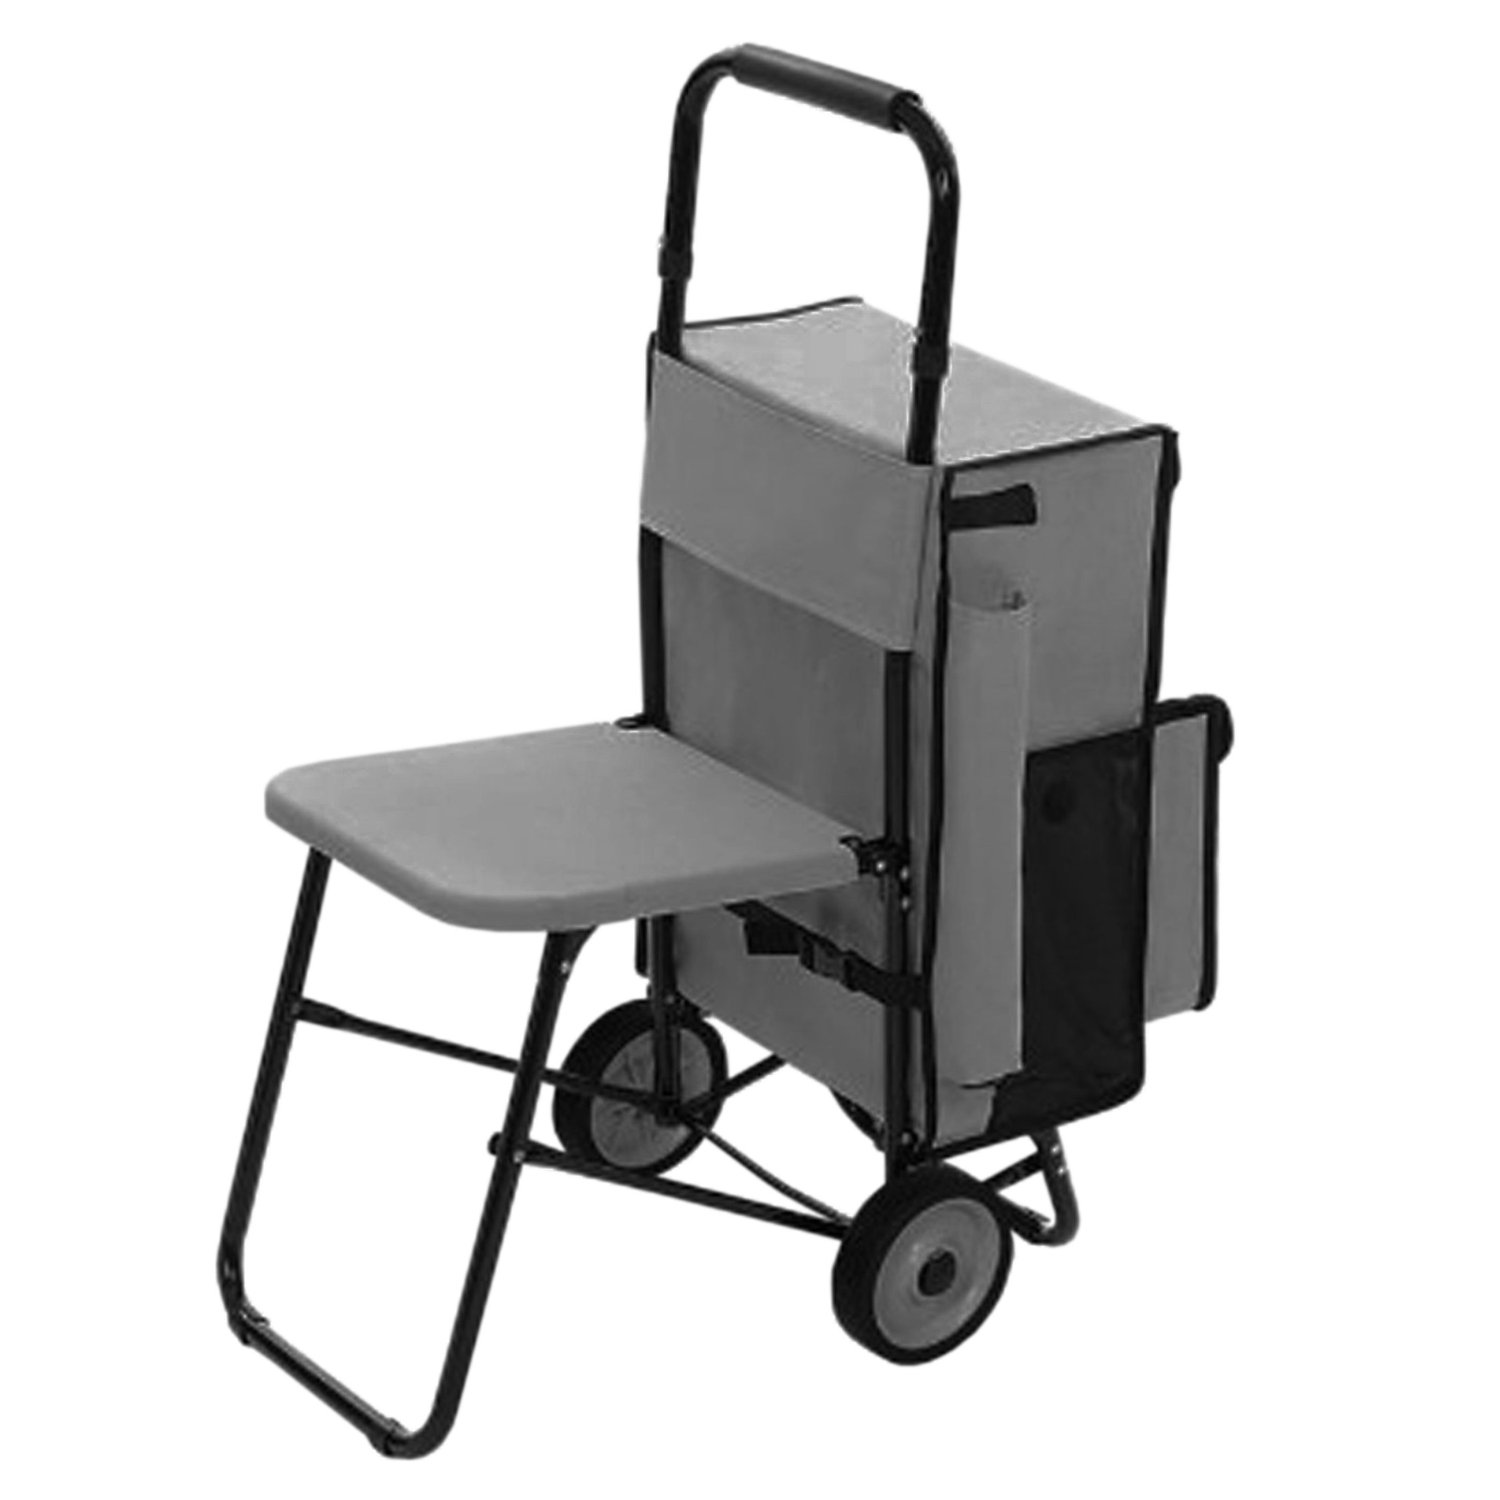 Rolling Personal Cart with Built-In Seat